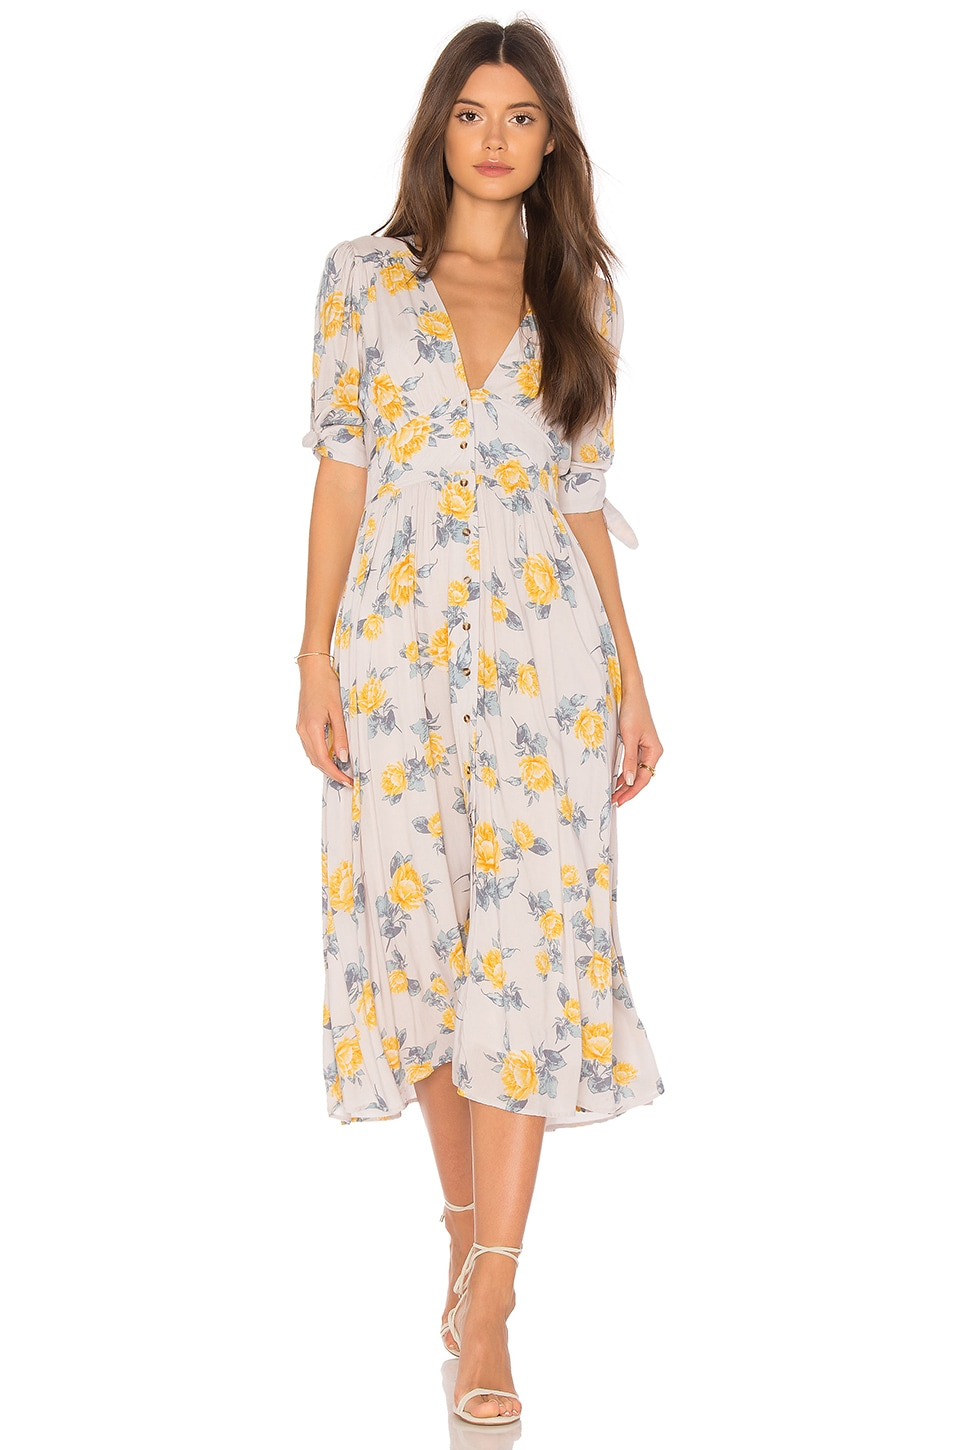 Free People Love of My Life Dress in Neutral Combo